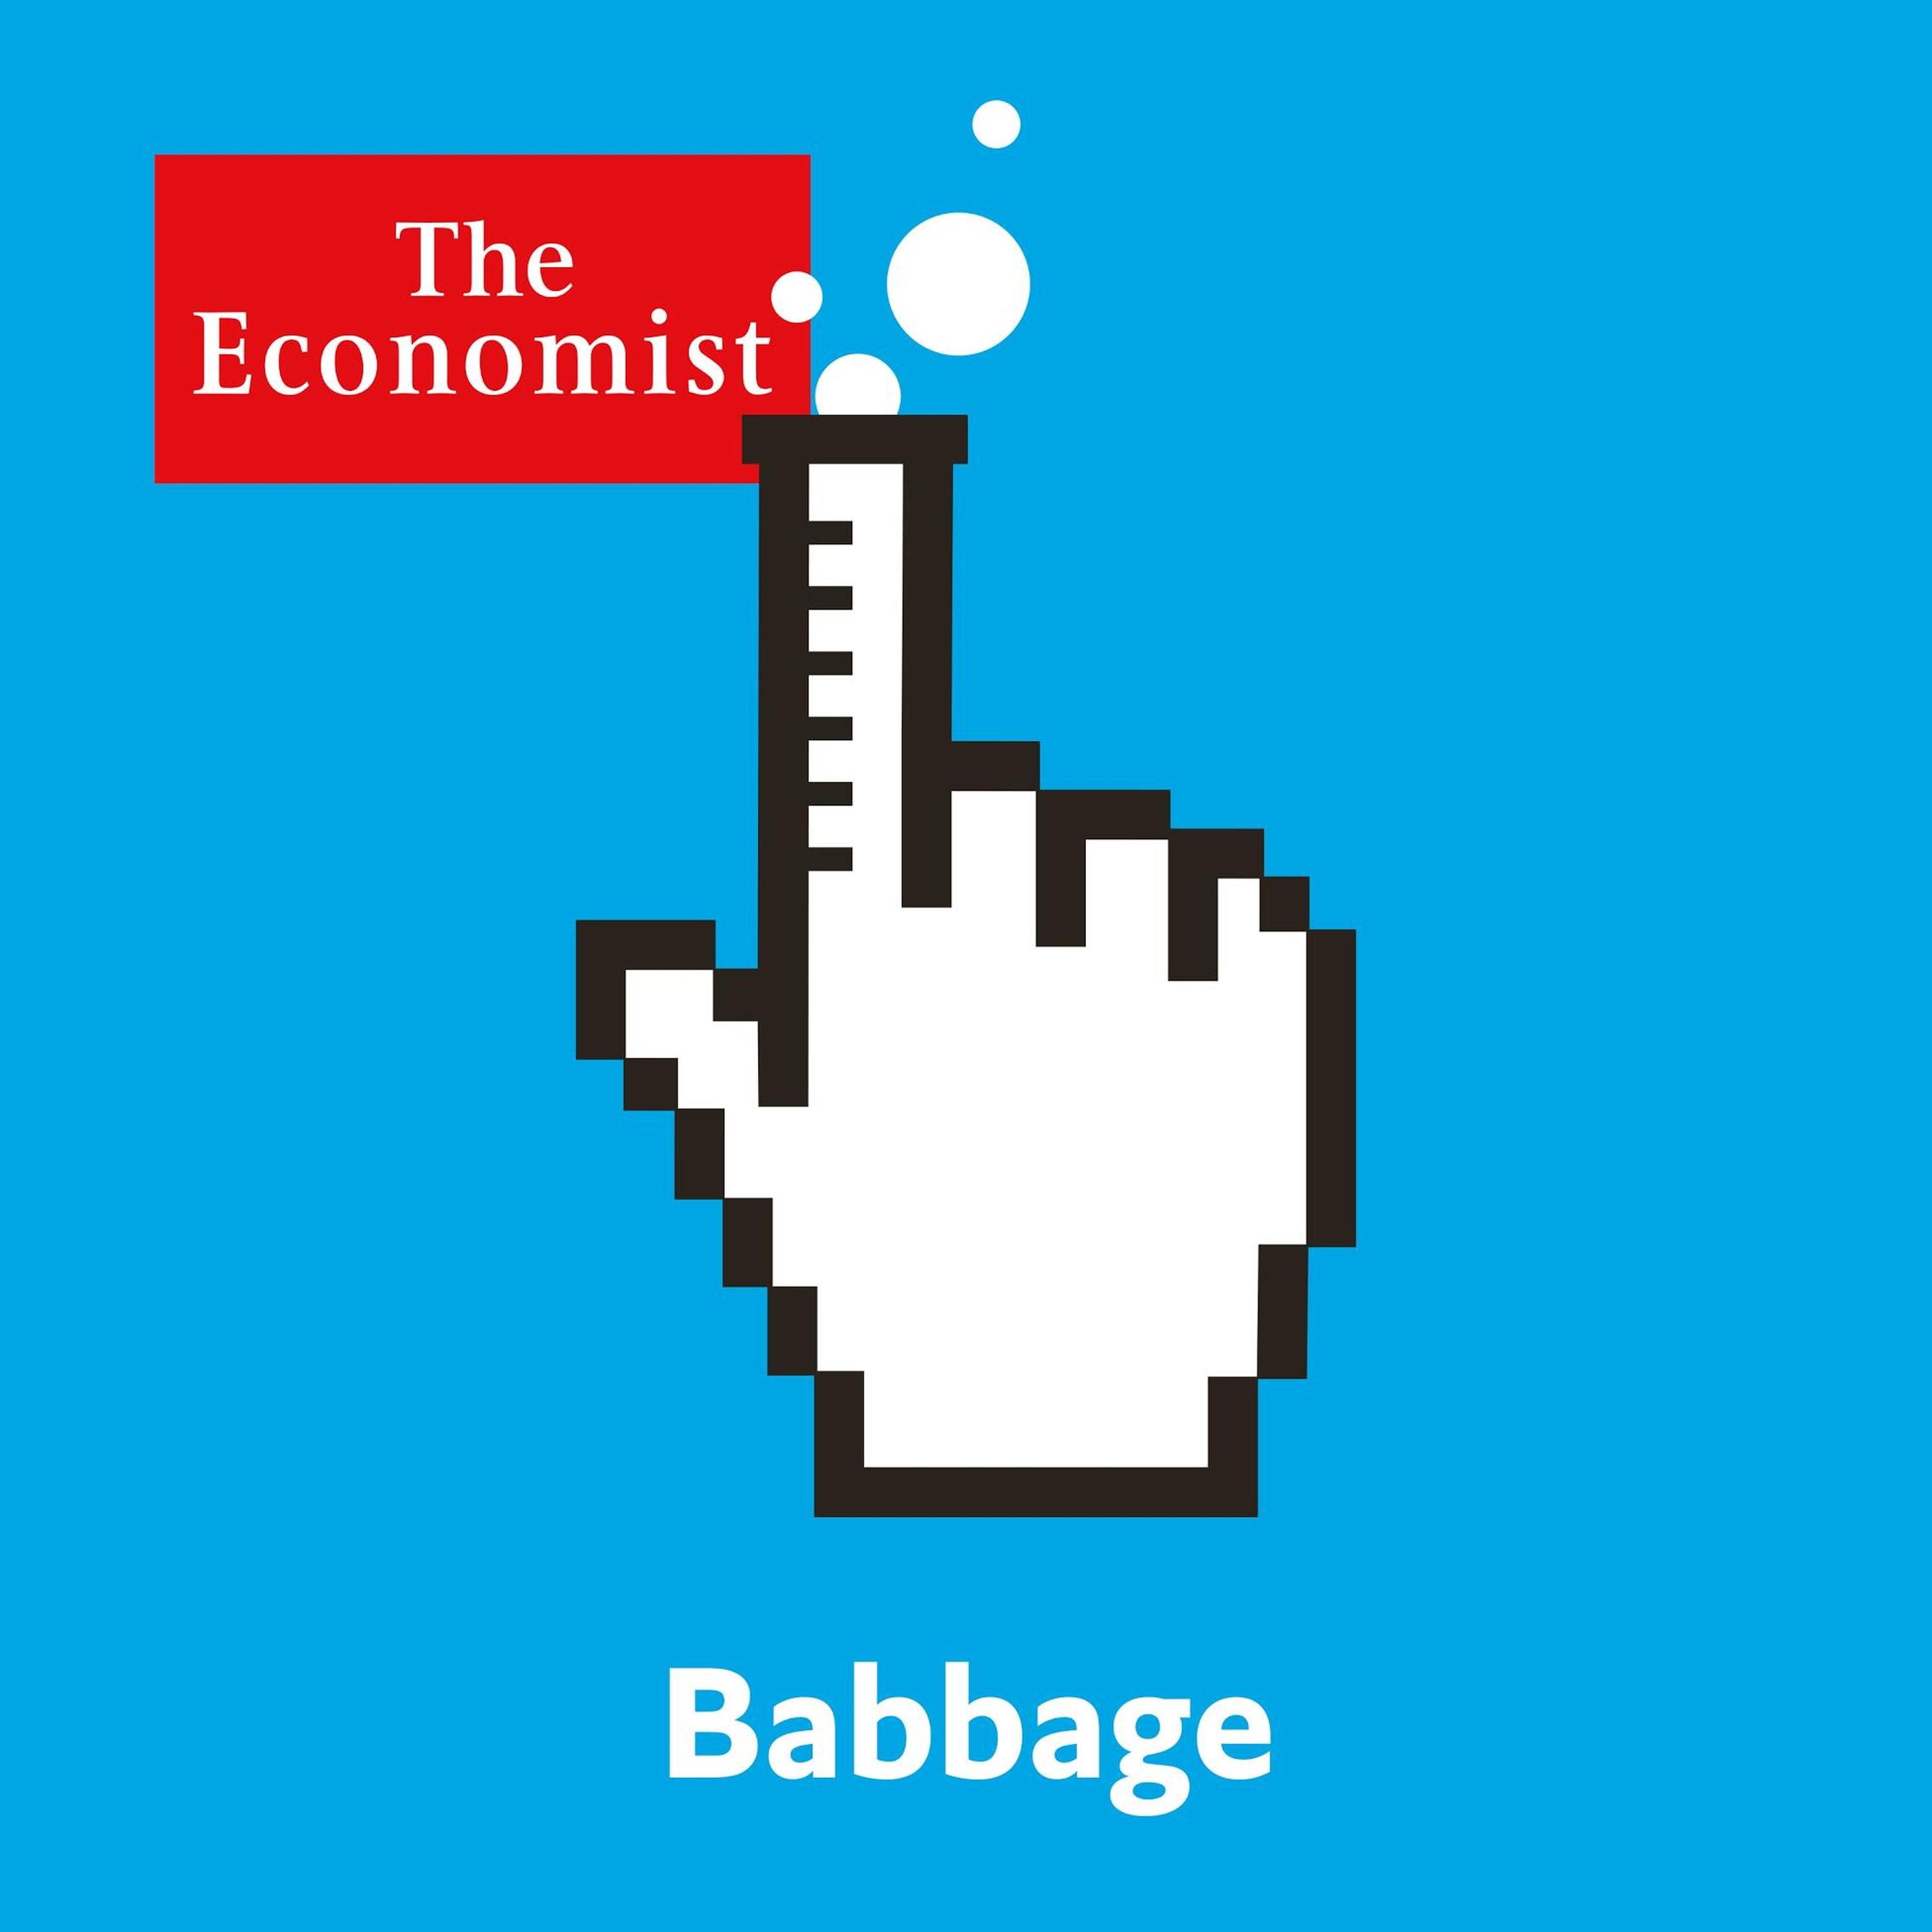 Babbage: From pandemic to twindemic